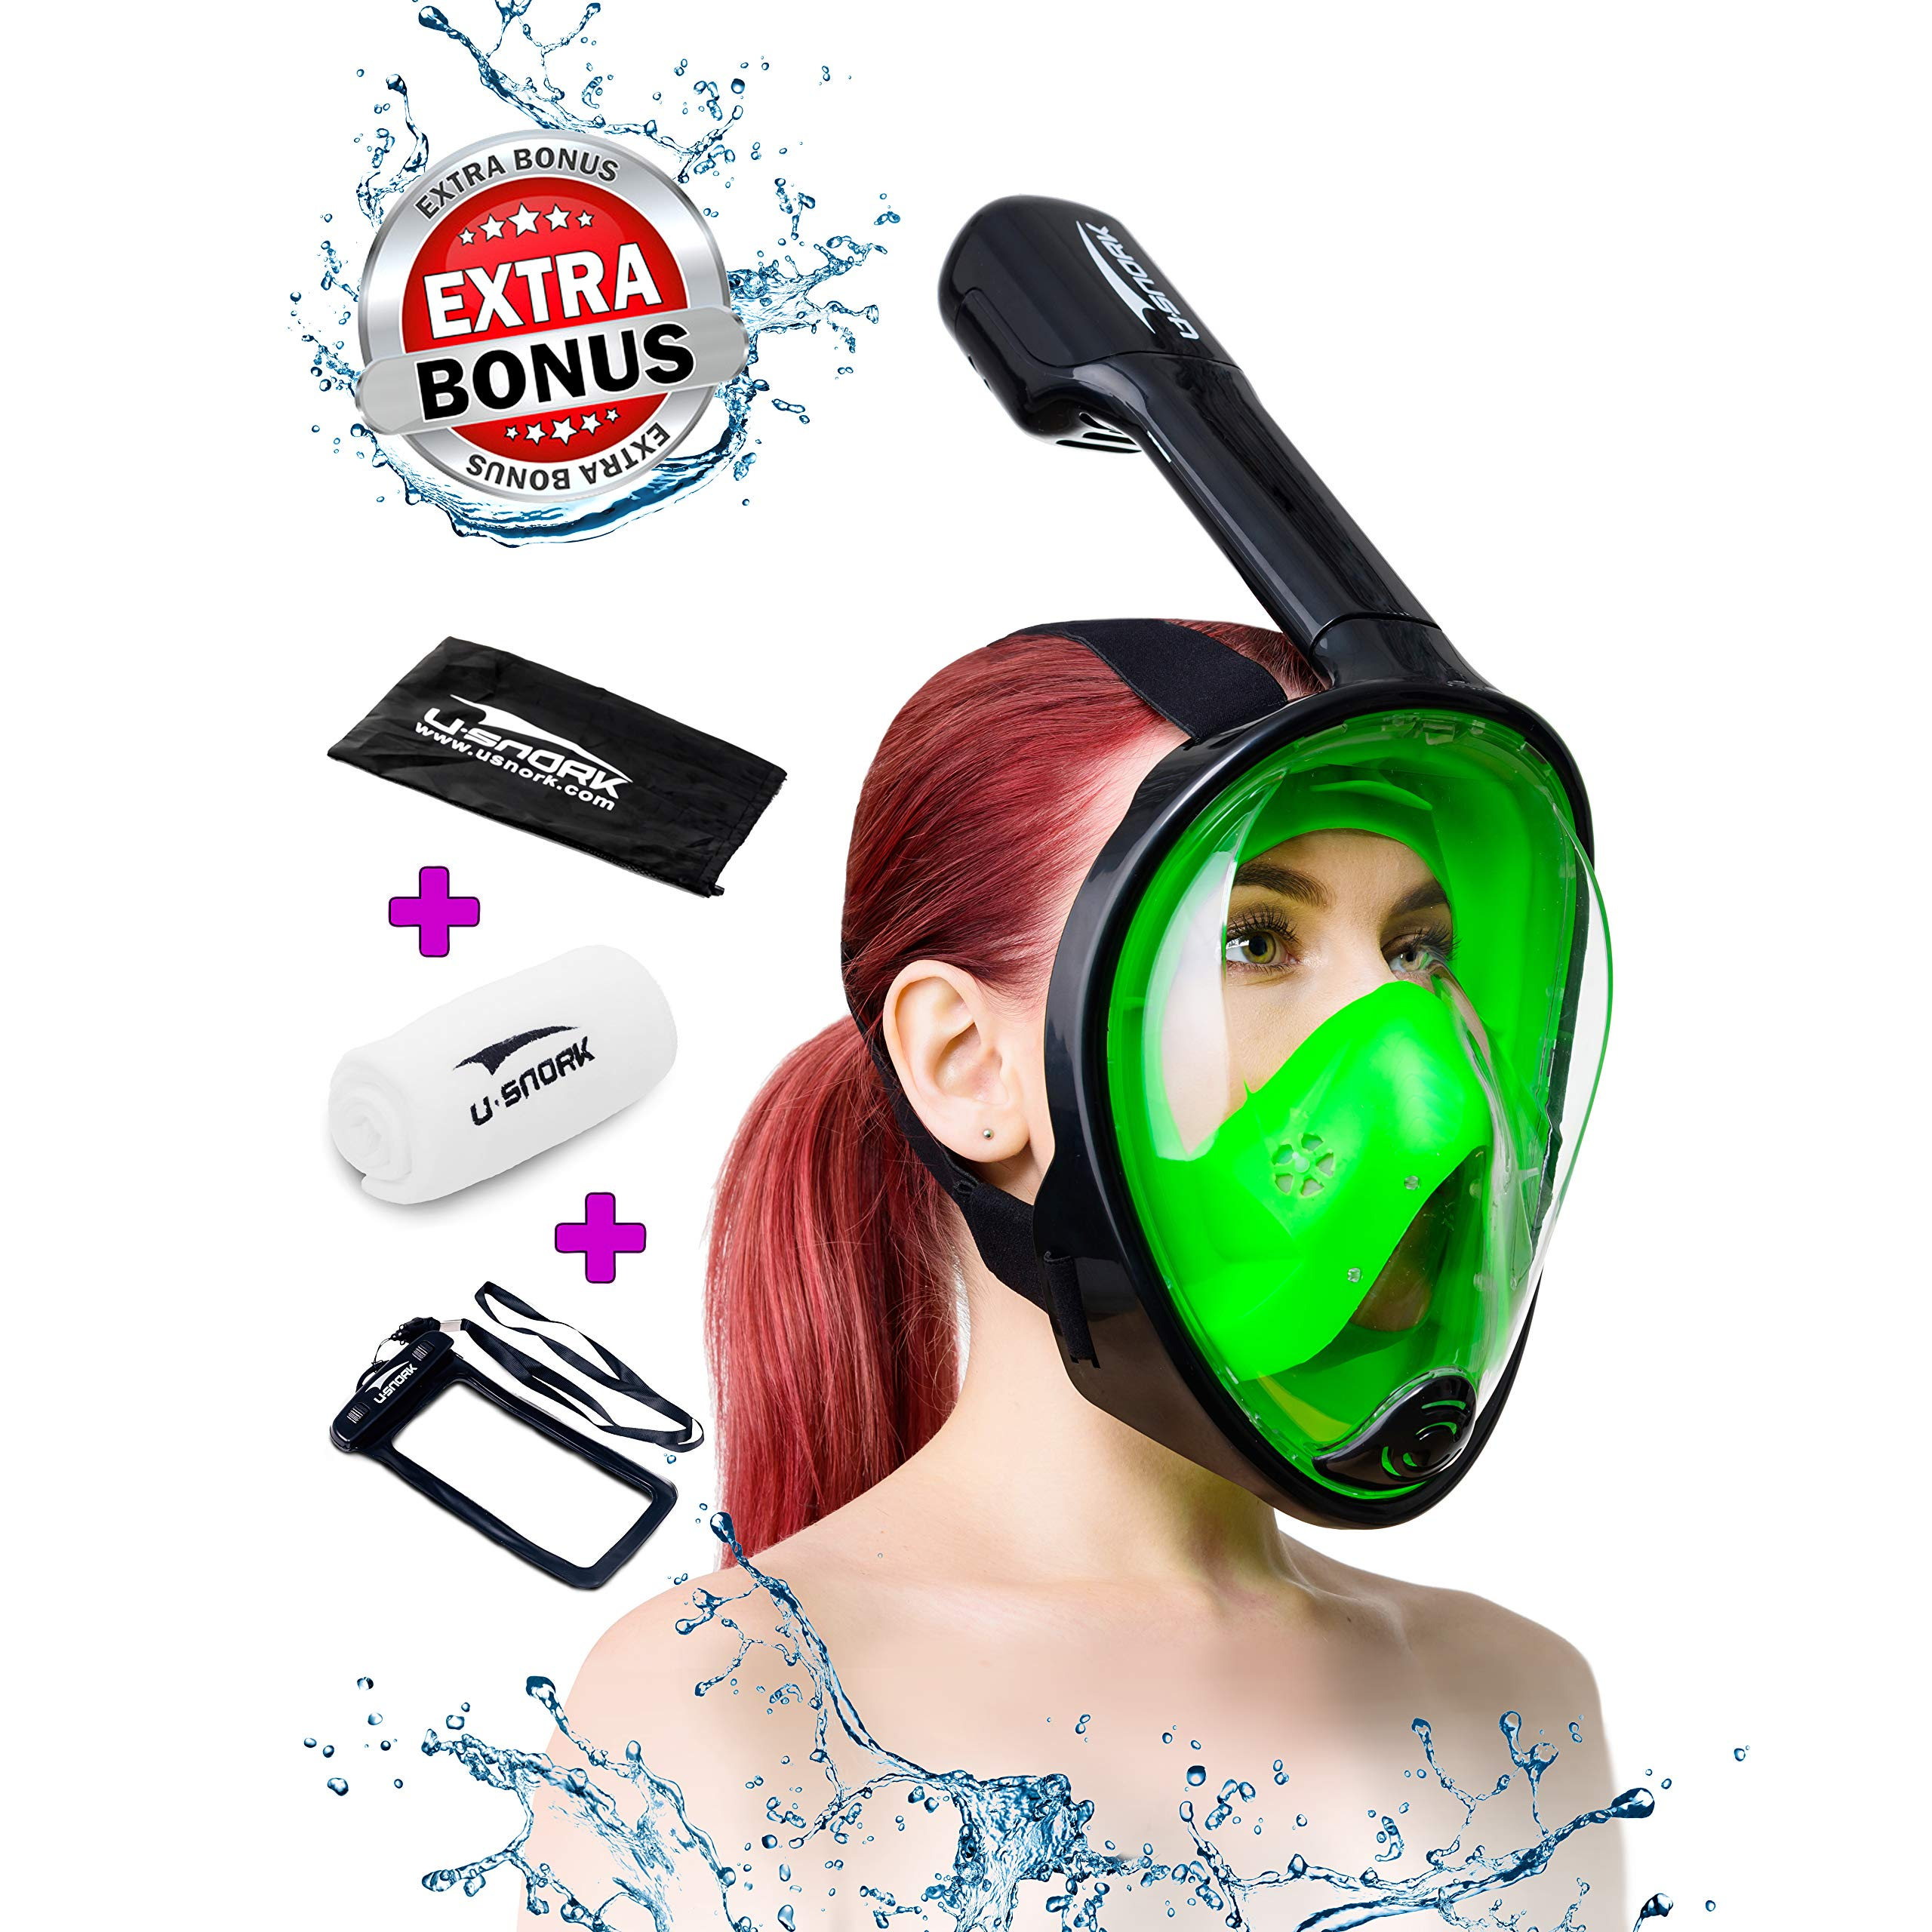 Full Face Snorkel Mask for Kids and Adults - Anti-Fog and Anti-Leak Easybreath Snorkeling Gear - Dive Scuba Mask with 180 Panoramic View and 4 Bonus Items as Snorkel Set (Black-Green, L/XL) by Usnork